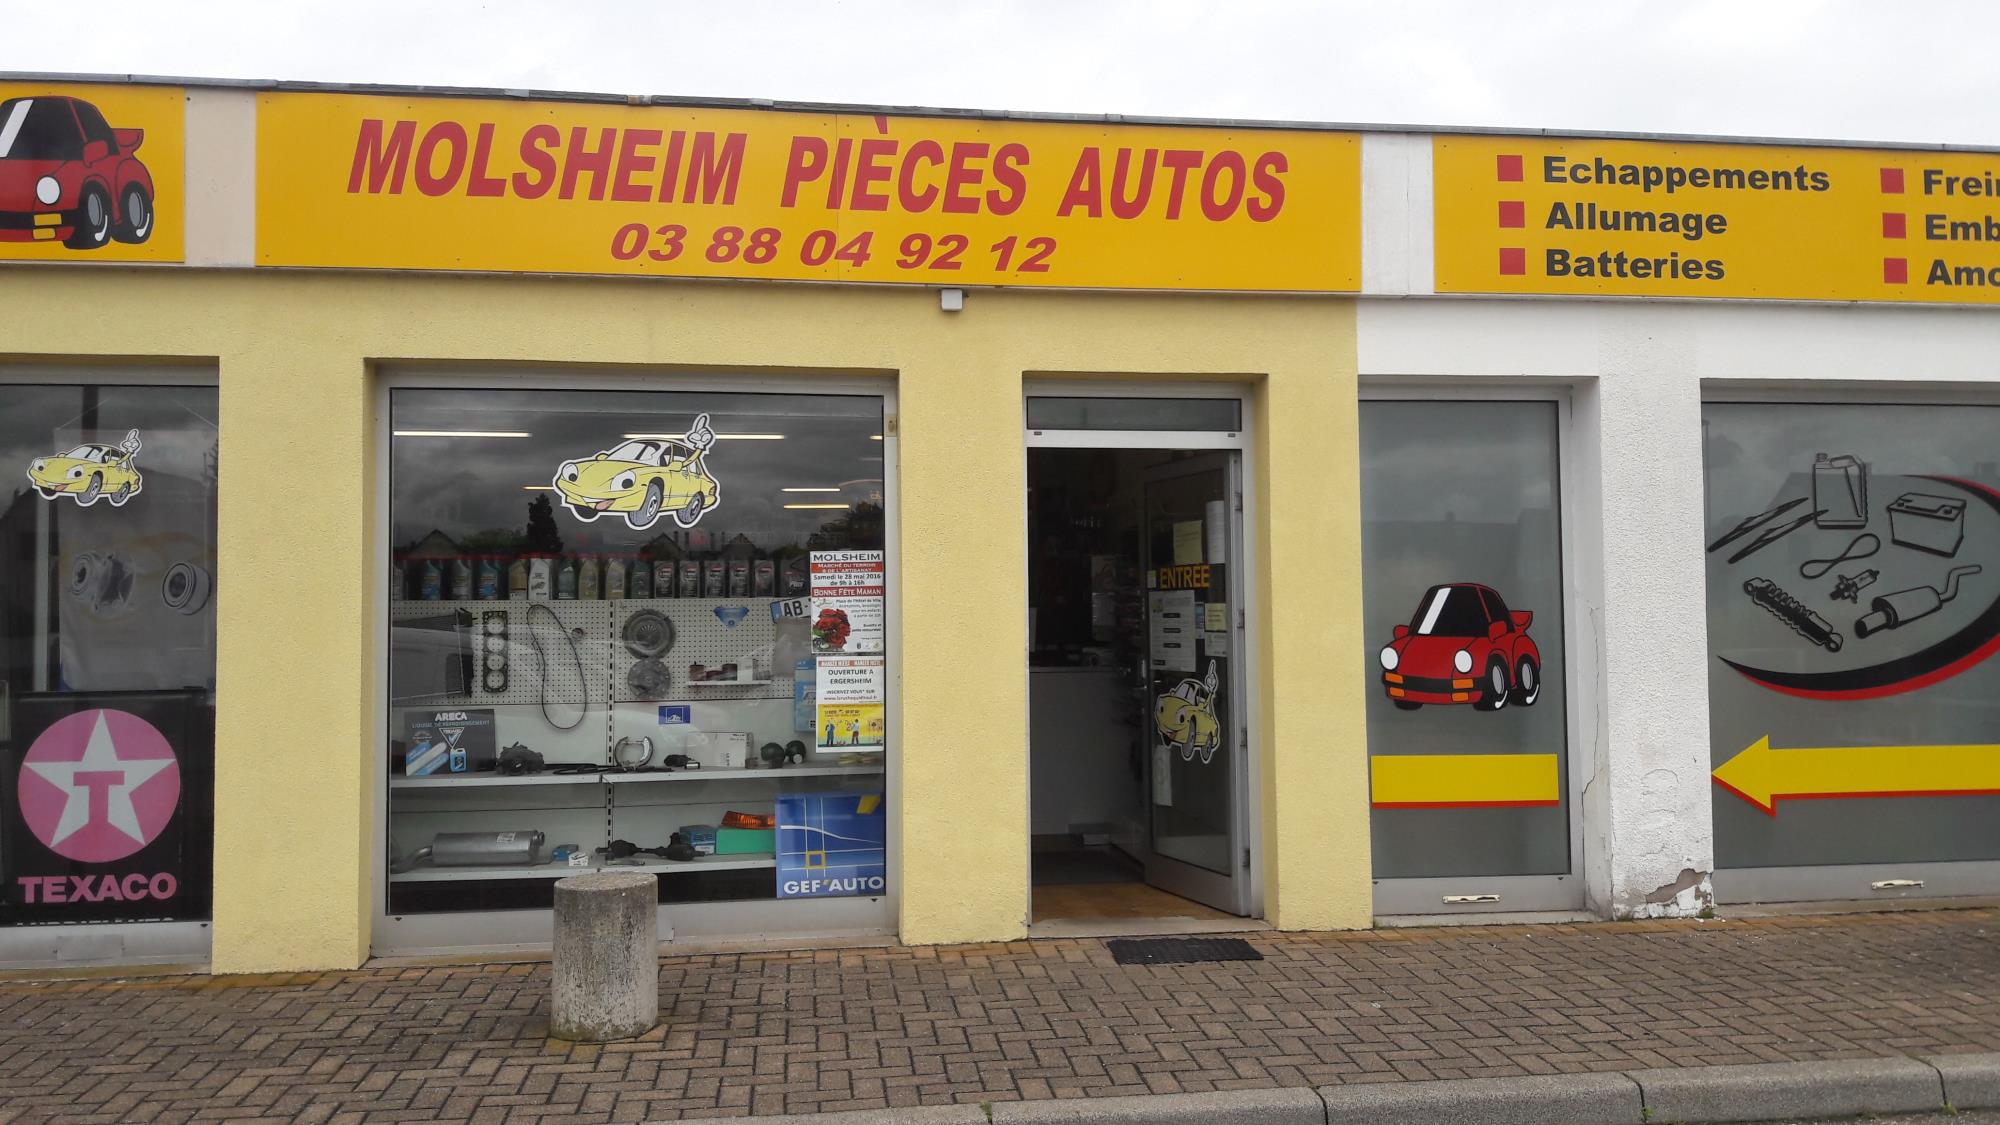 Molsheim Pieces Autos